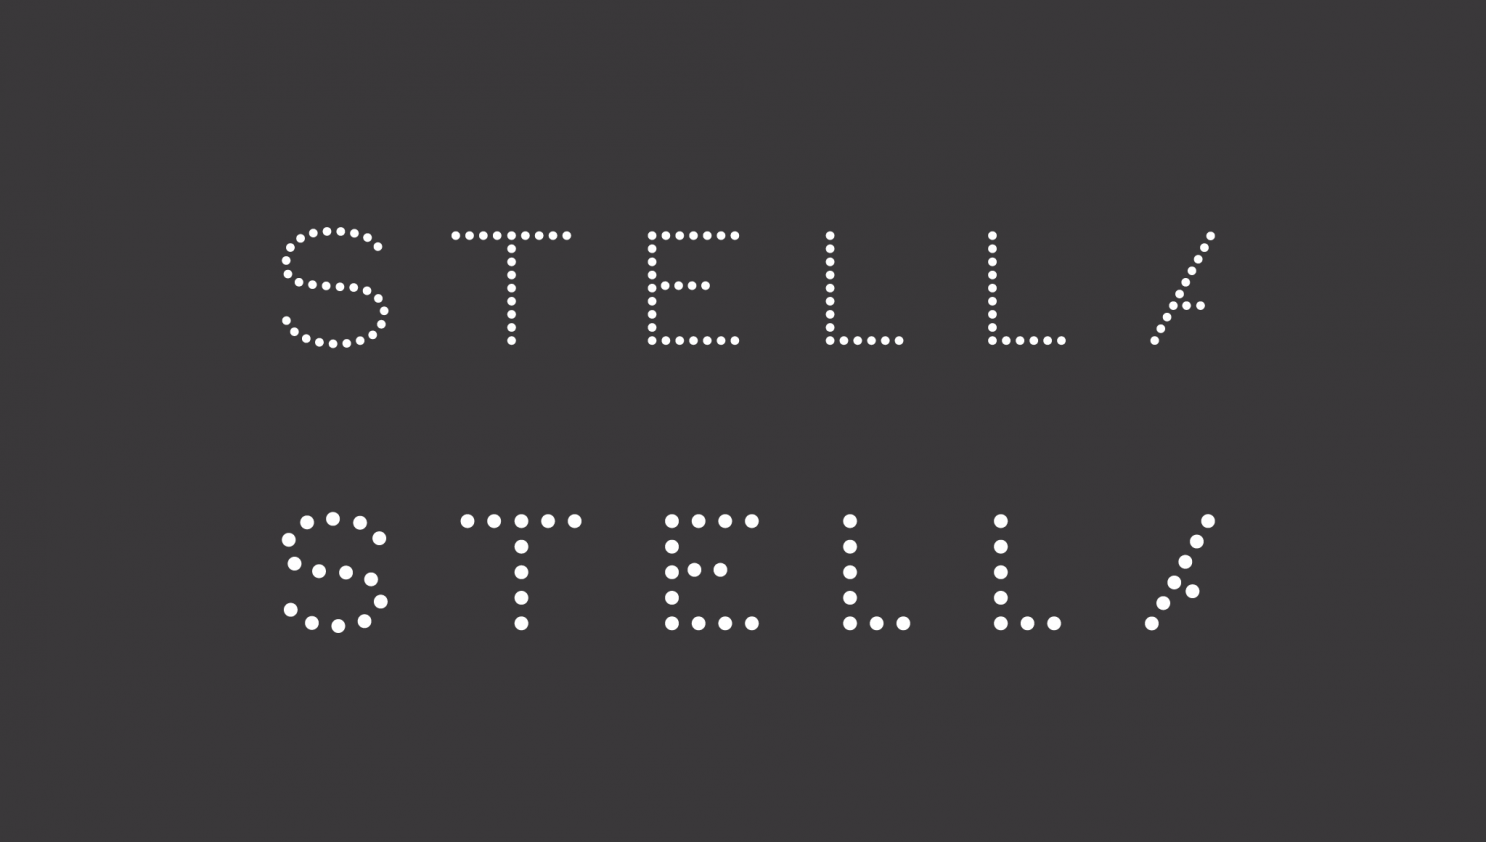 Stella_McCartney_logo_detail-1-1486x842.png